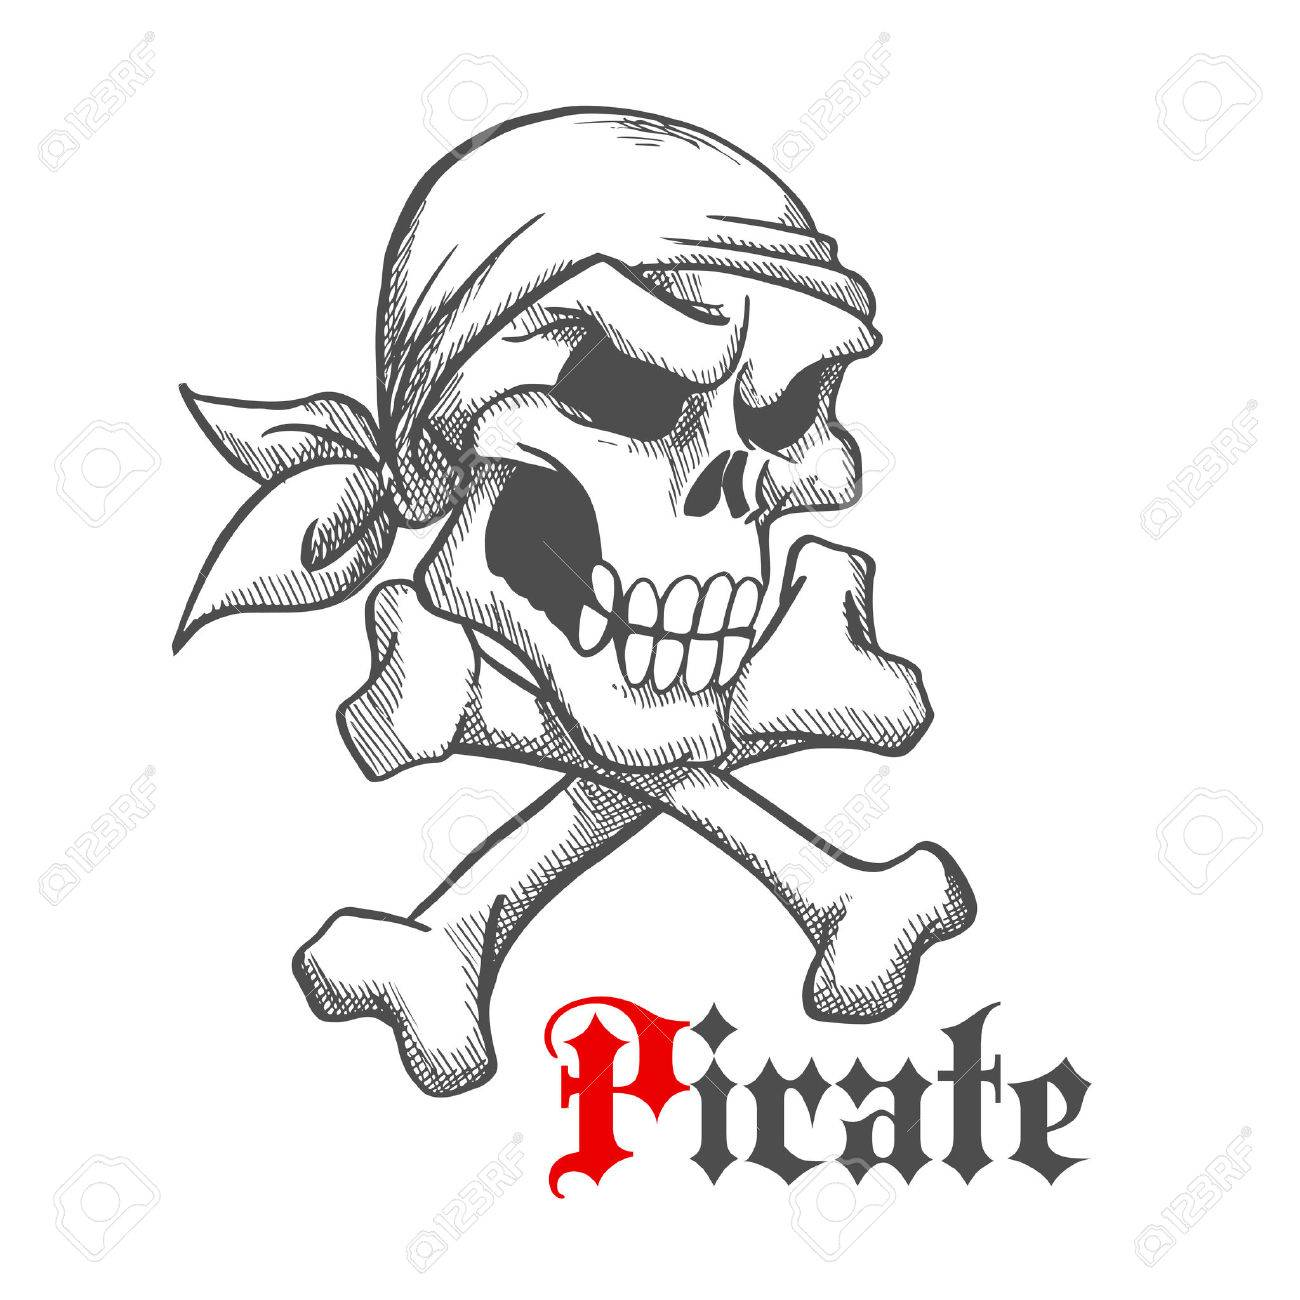 Pirate captain skull with crossbones vintage sketch illustration banco de imagens pirate captain skull with crossbones vintage sketch illustration with angry human skeleton head in bandana use as jolly roger ccuart Images